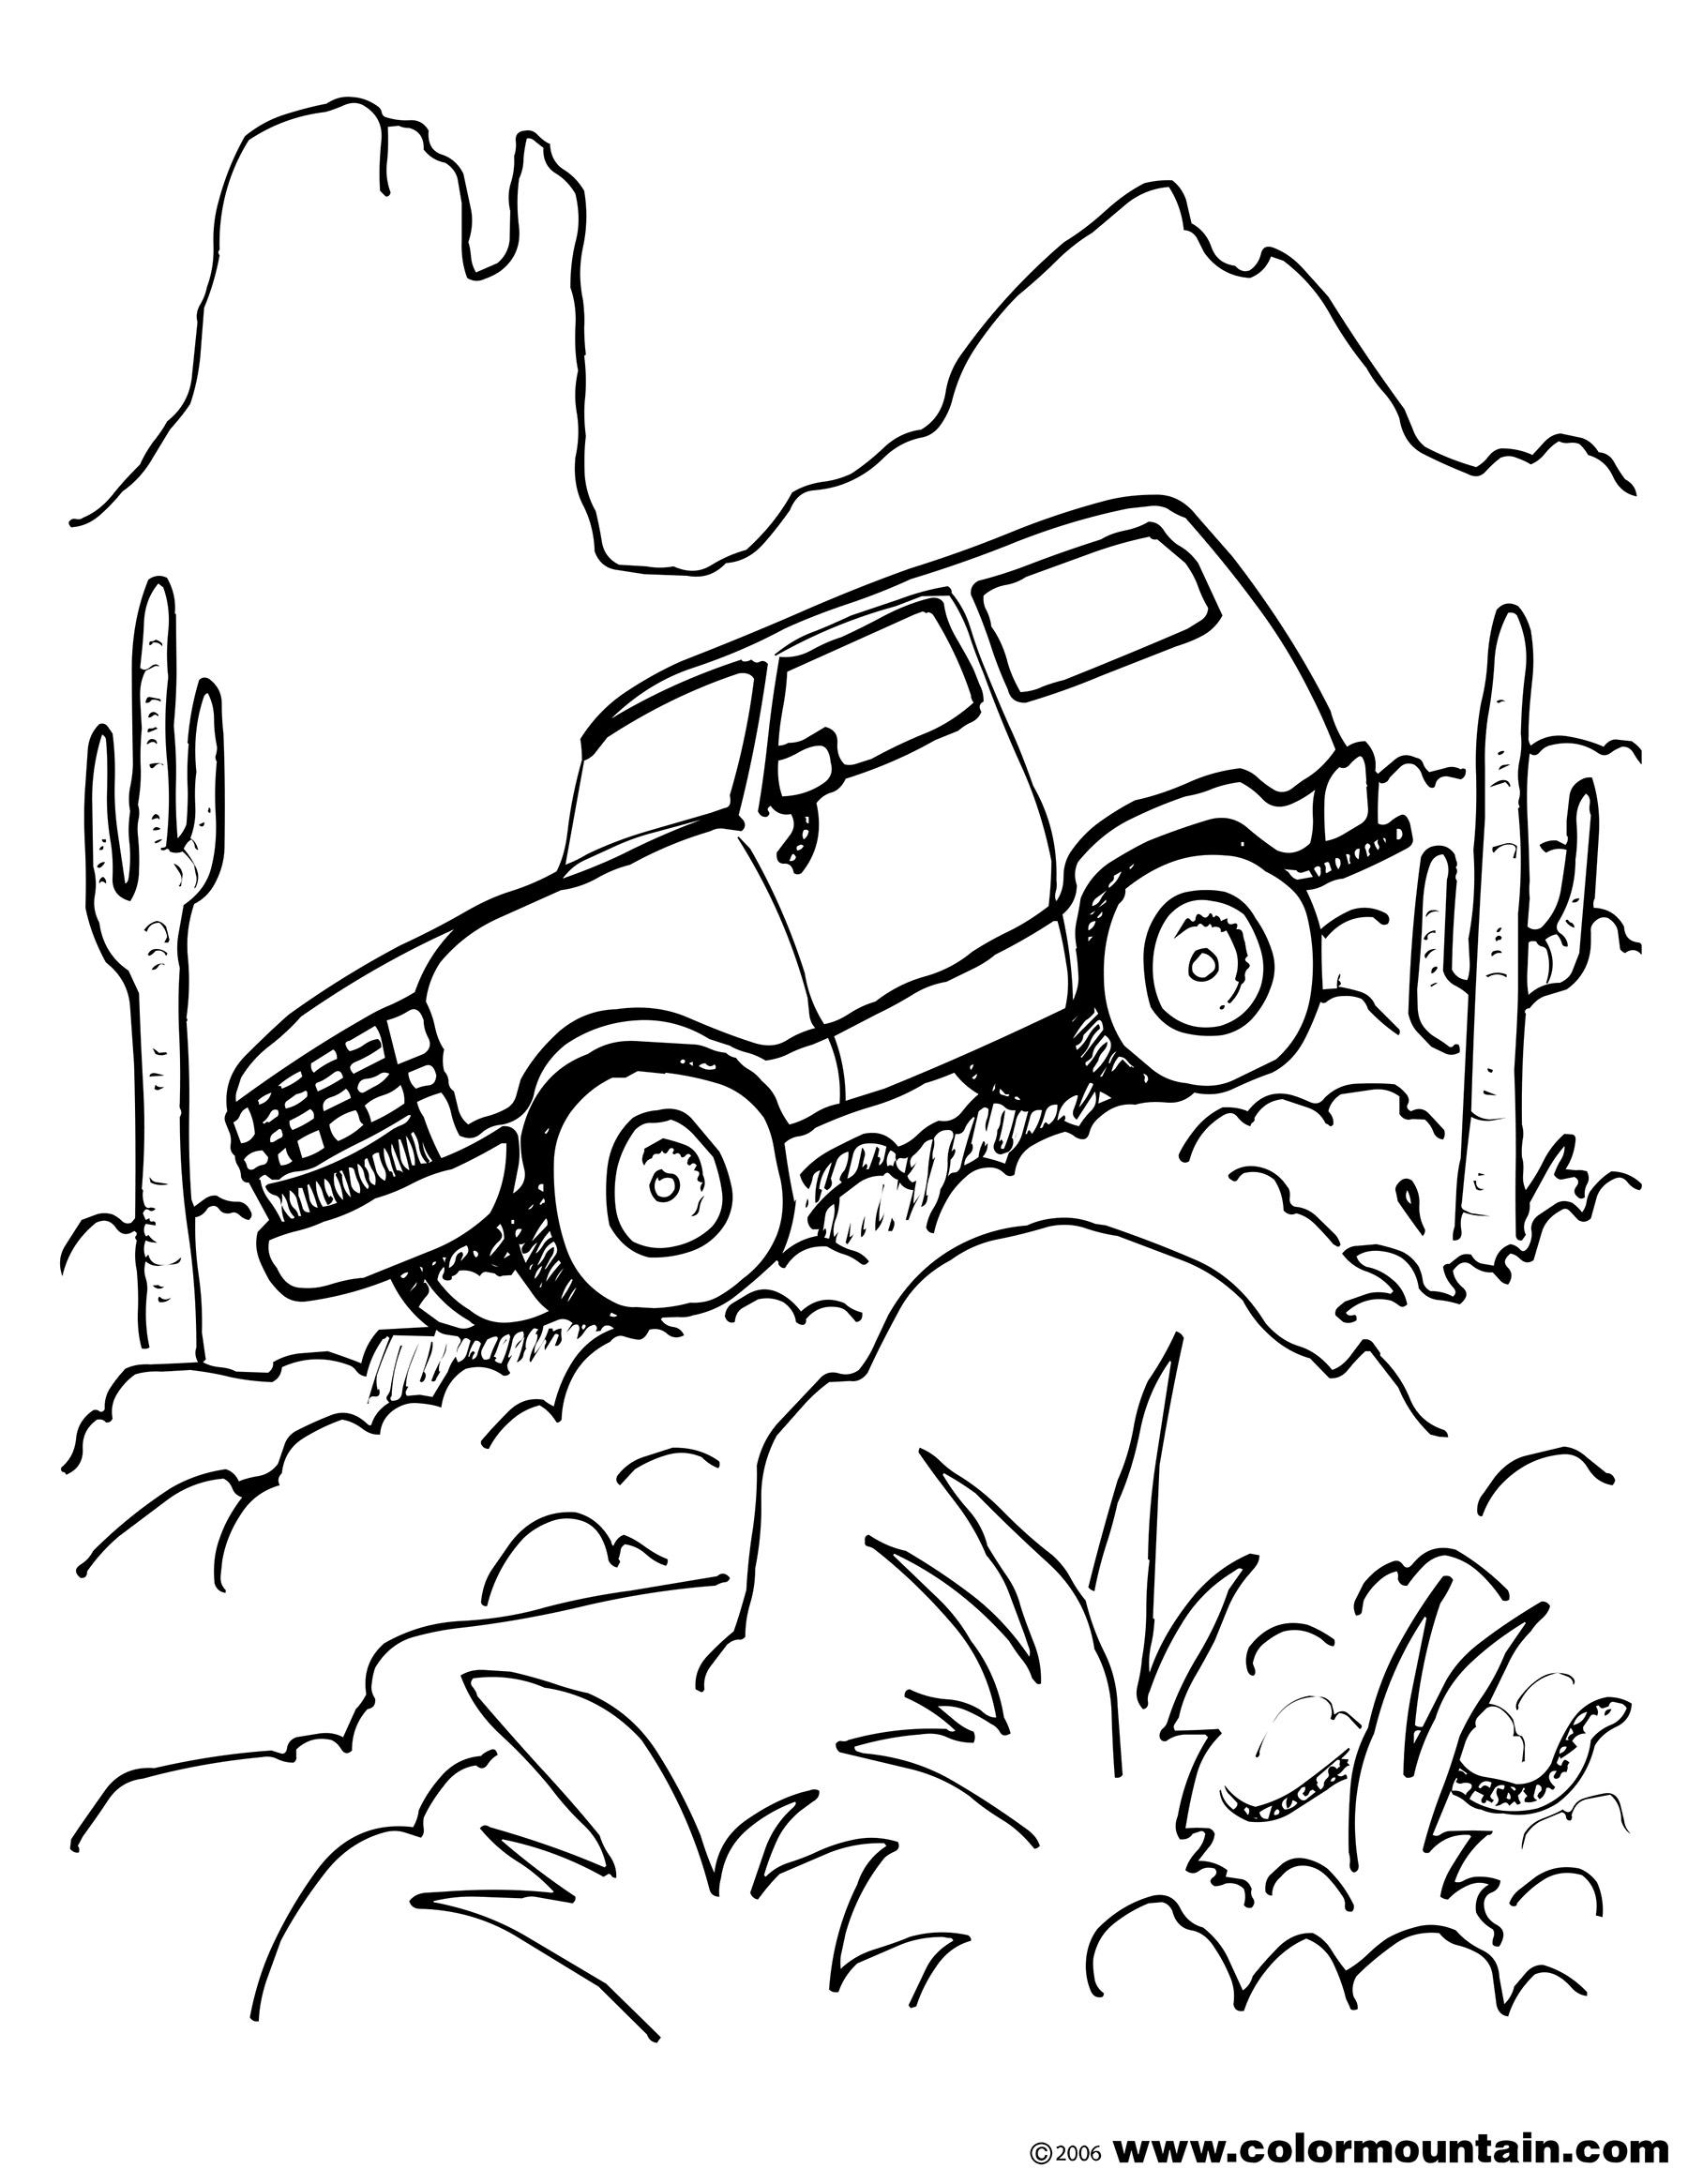 off road truck coloring pages race car off road coloring page off road car car road off coloring truck pages